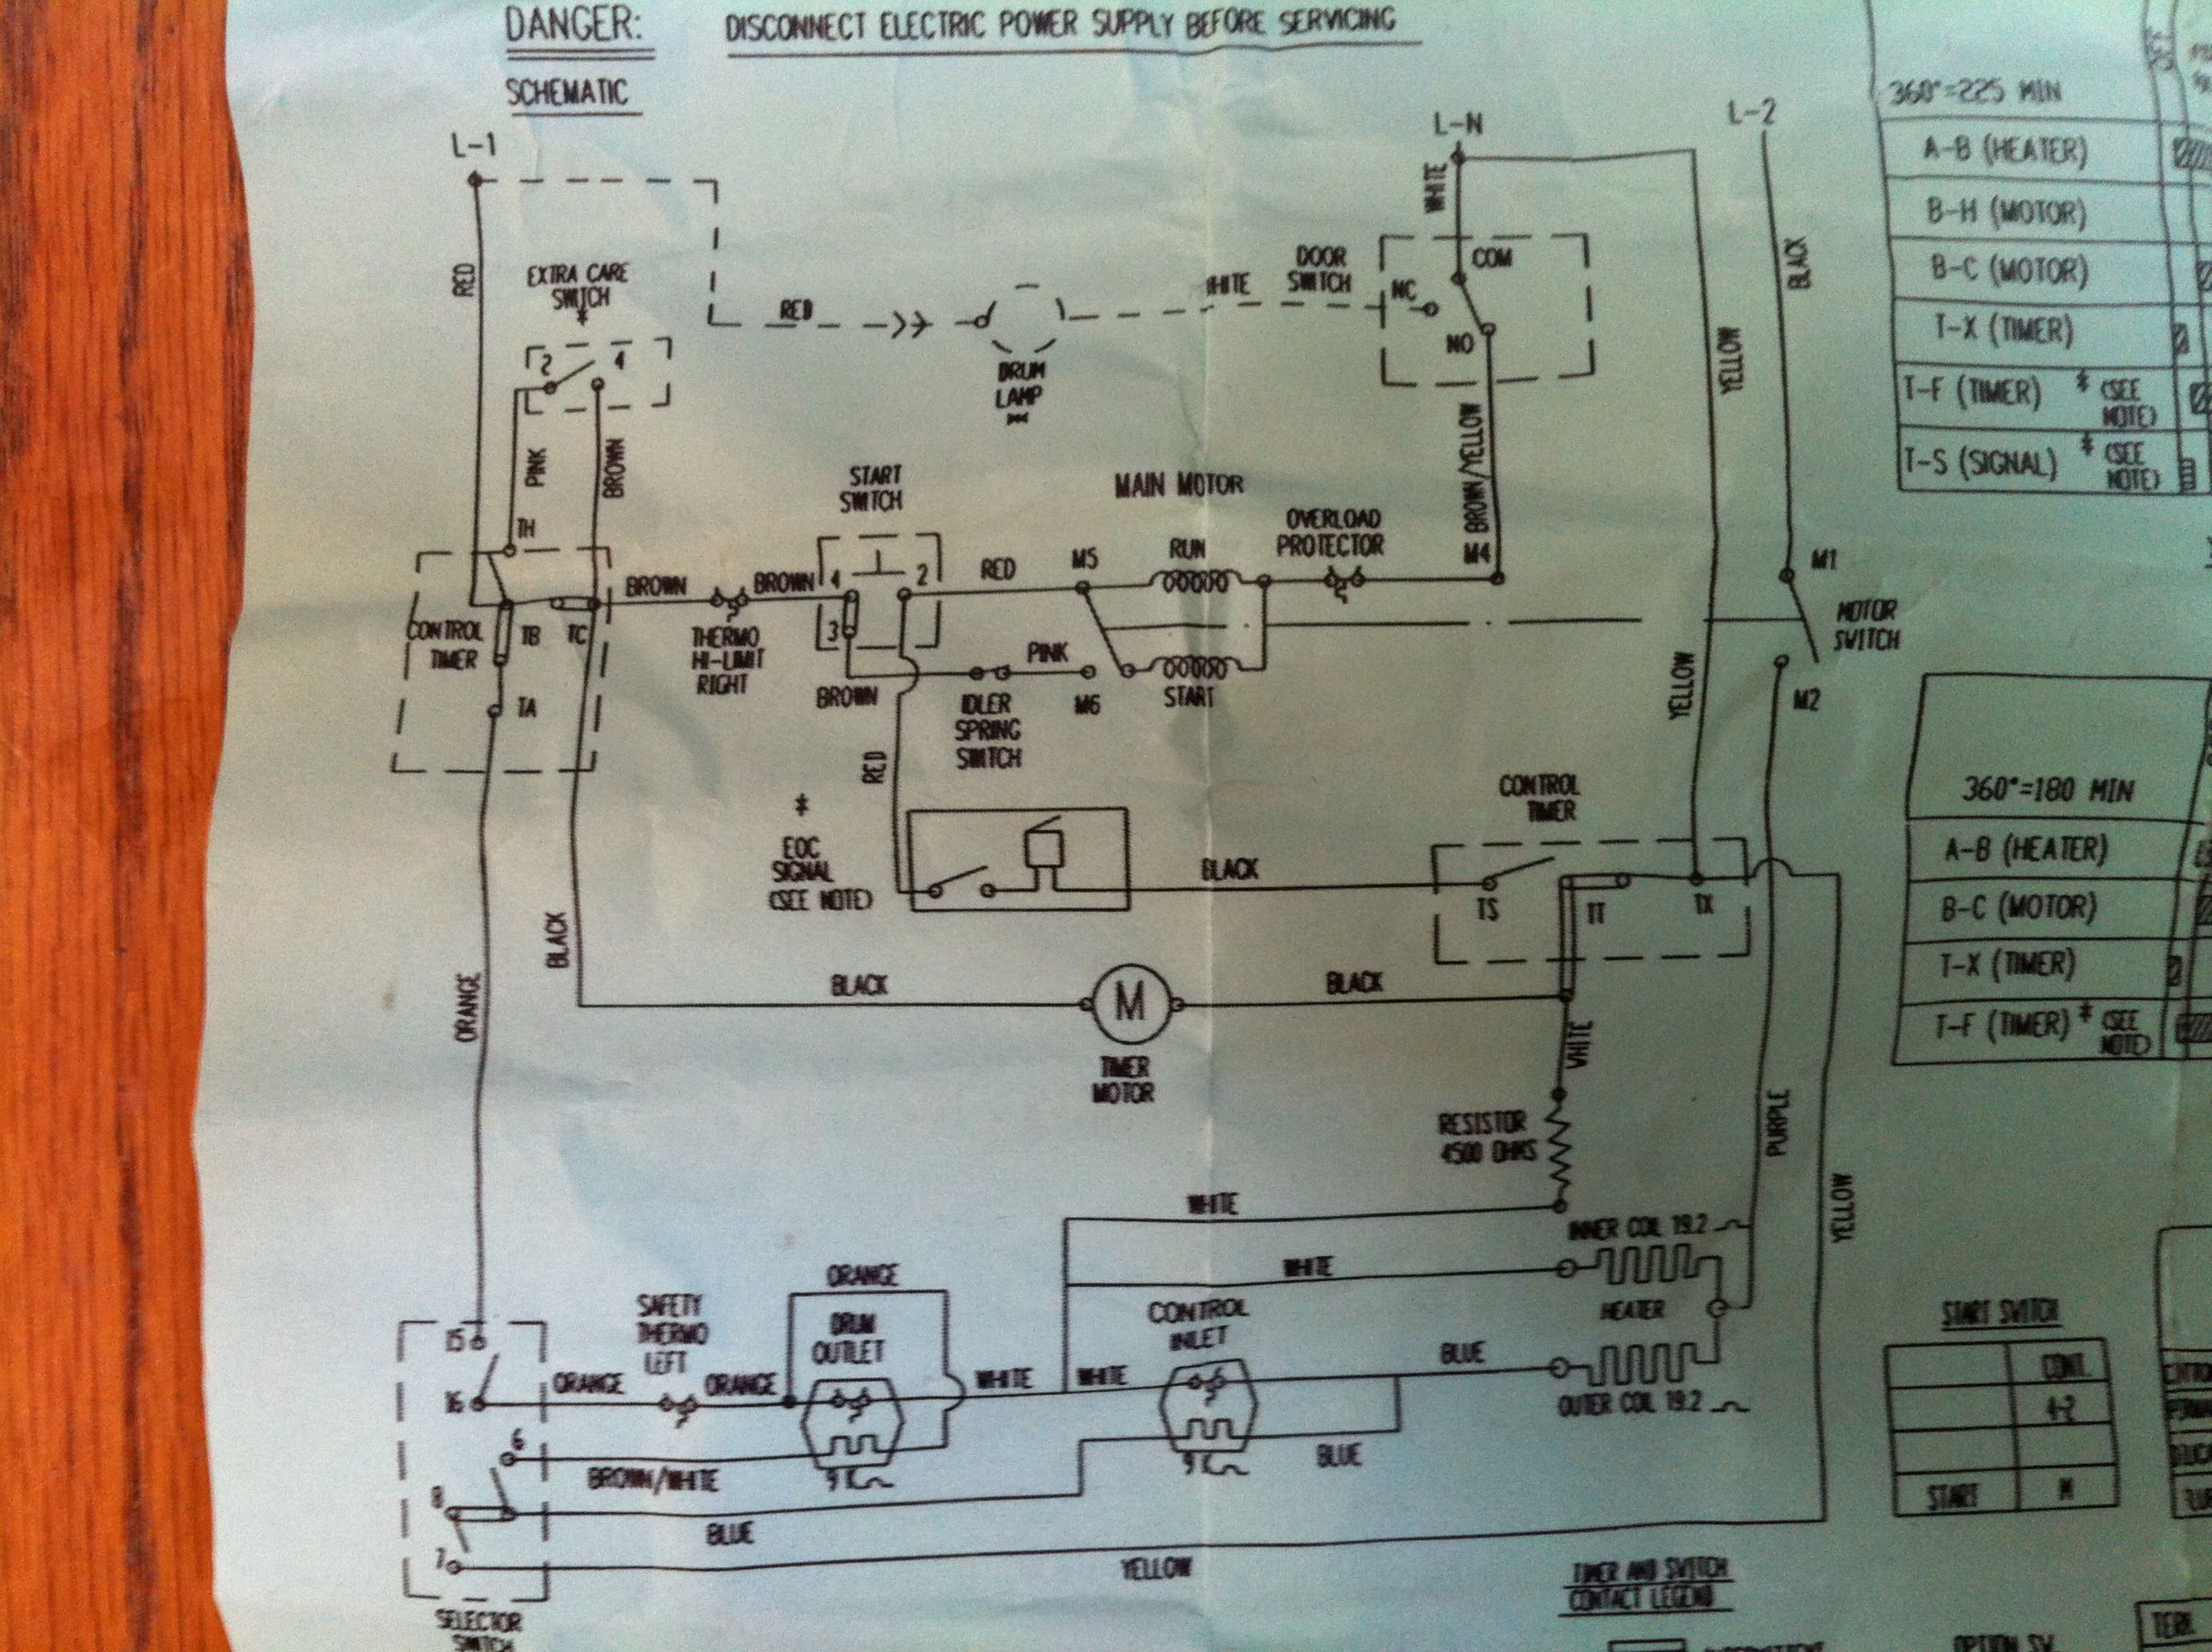 wiring diagram for kenmore dryer motor wiring wireing diagrams electric dryers blow drying on wiring diagram for kenmore dryer motor